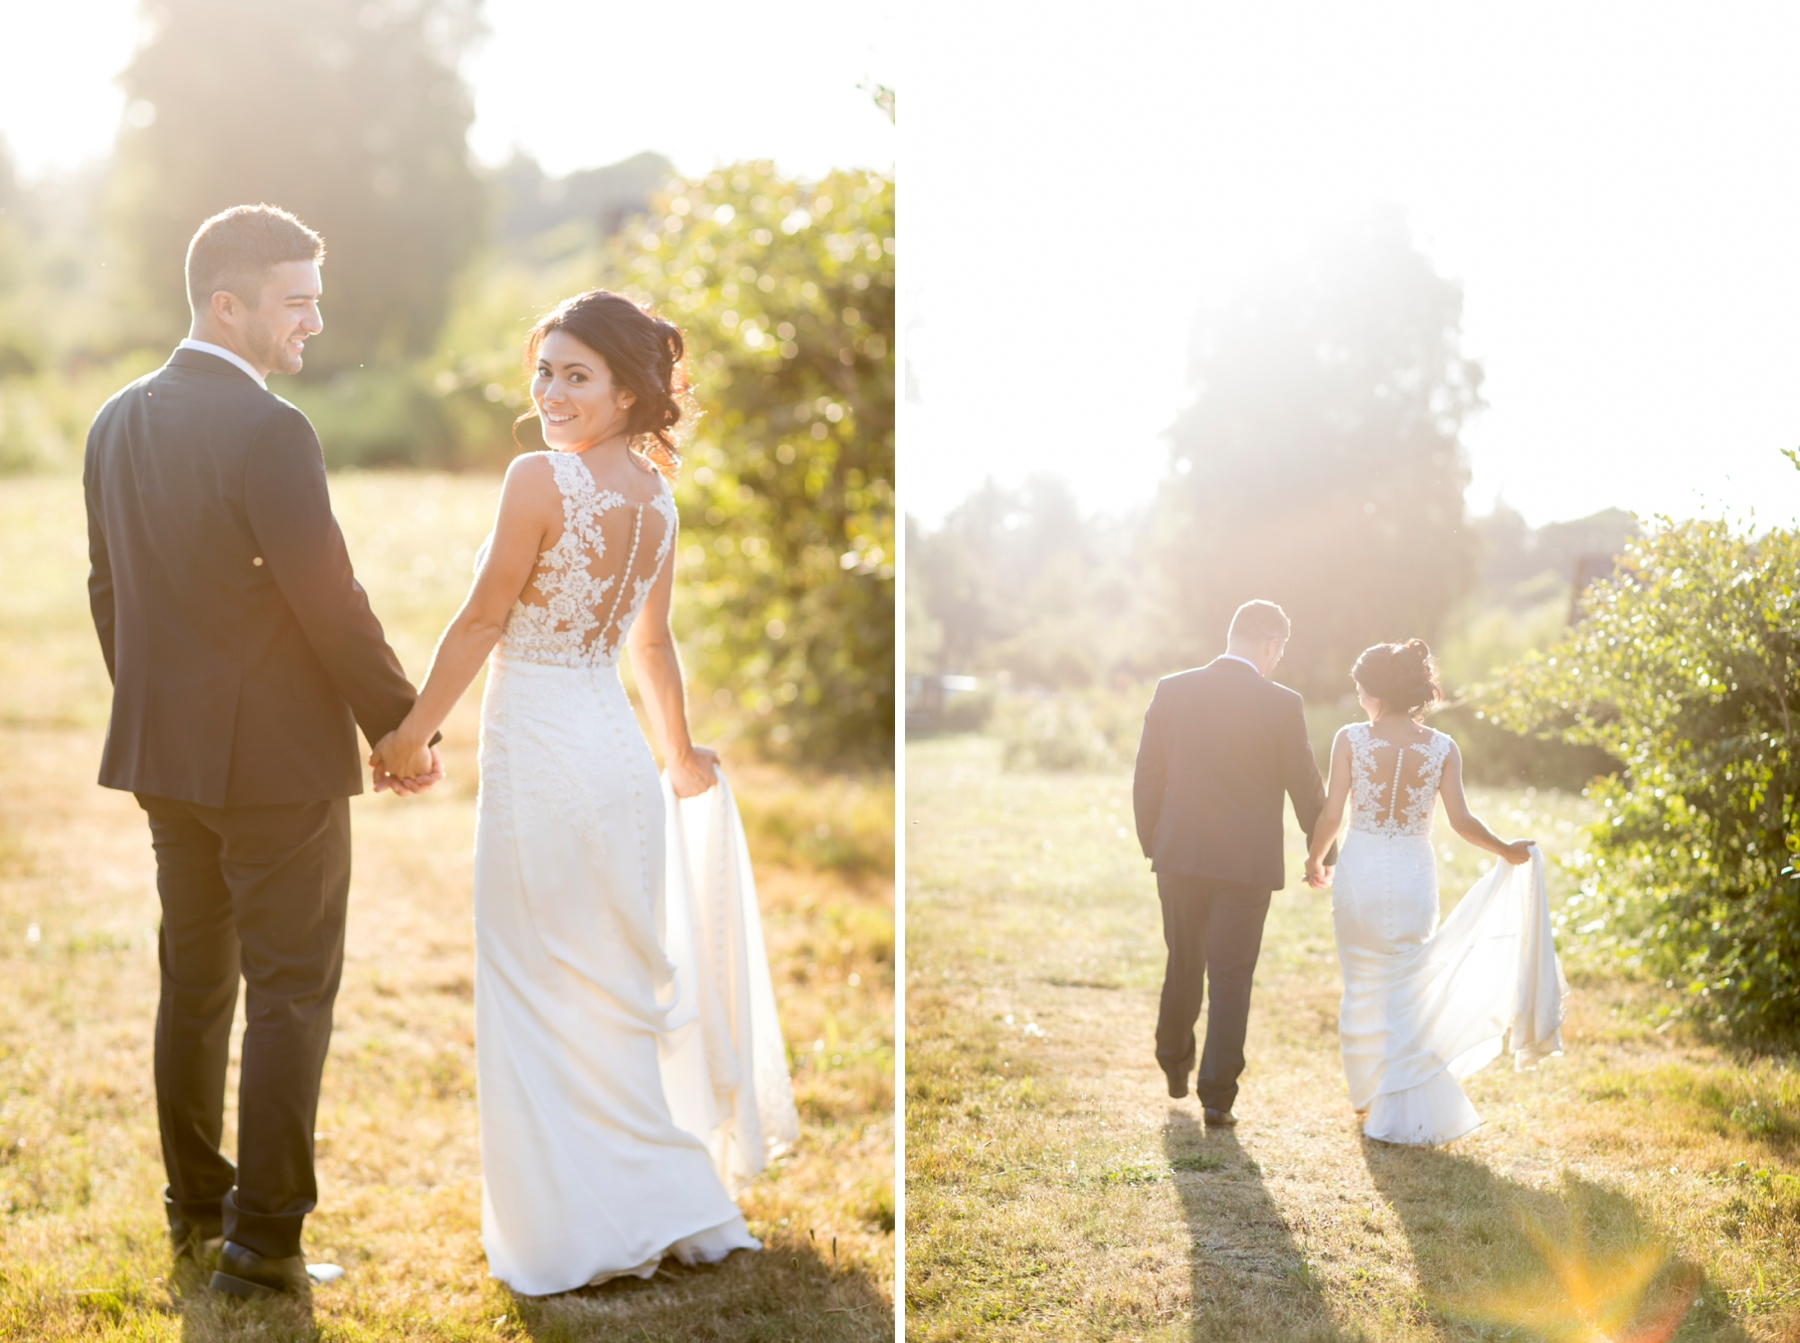 seatte, wedding, photographer, North Bend, Bybee Farms, Snoqualmie, issaqua,_0084.jpg